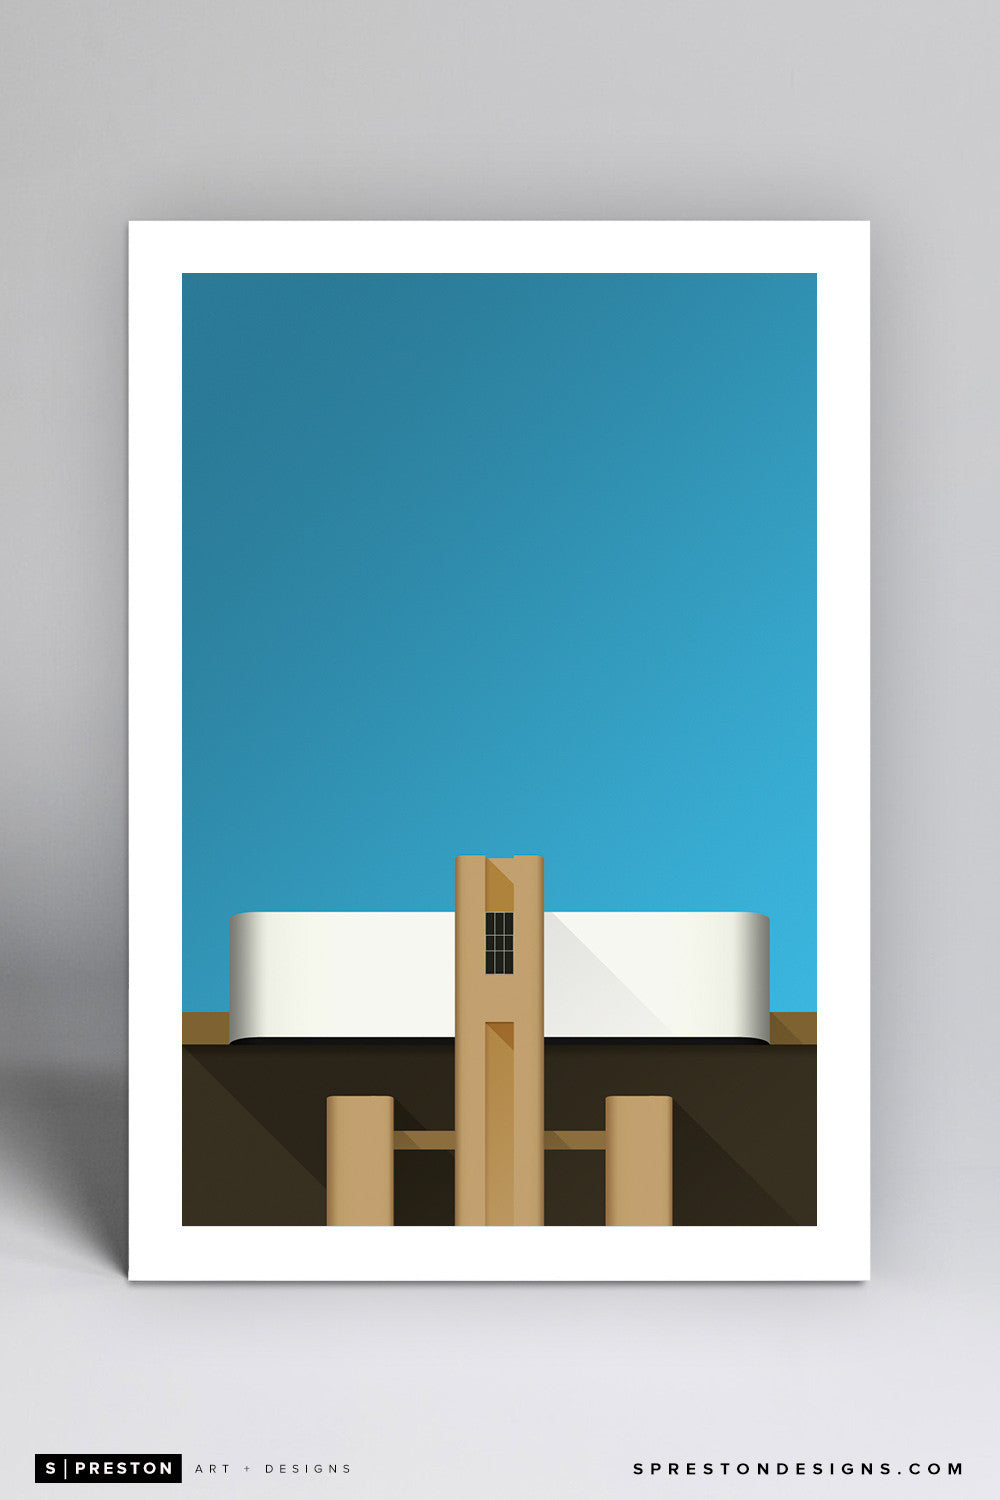 Minimalist Kyle Field - Texas A&M - S. Preston